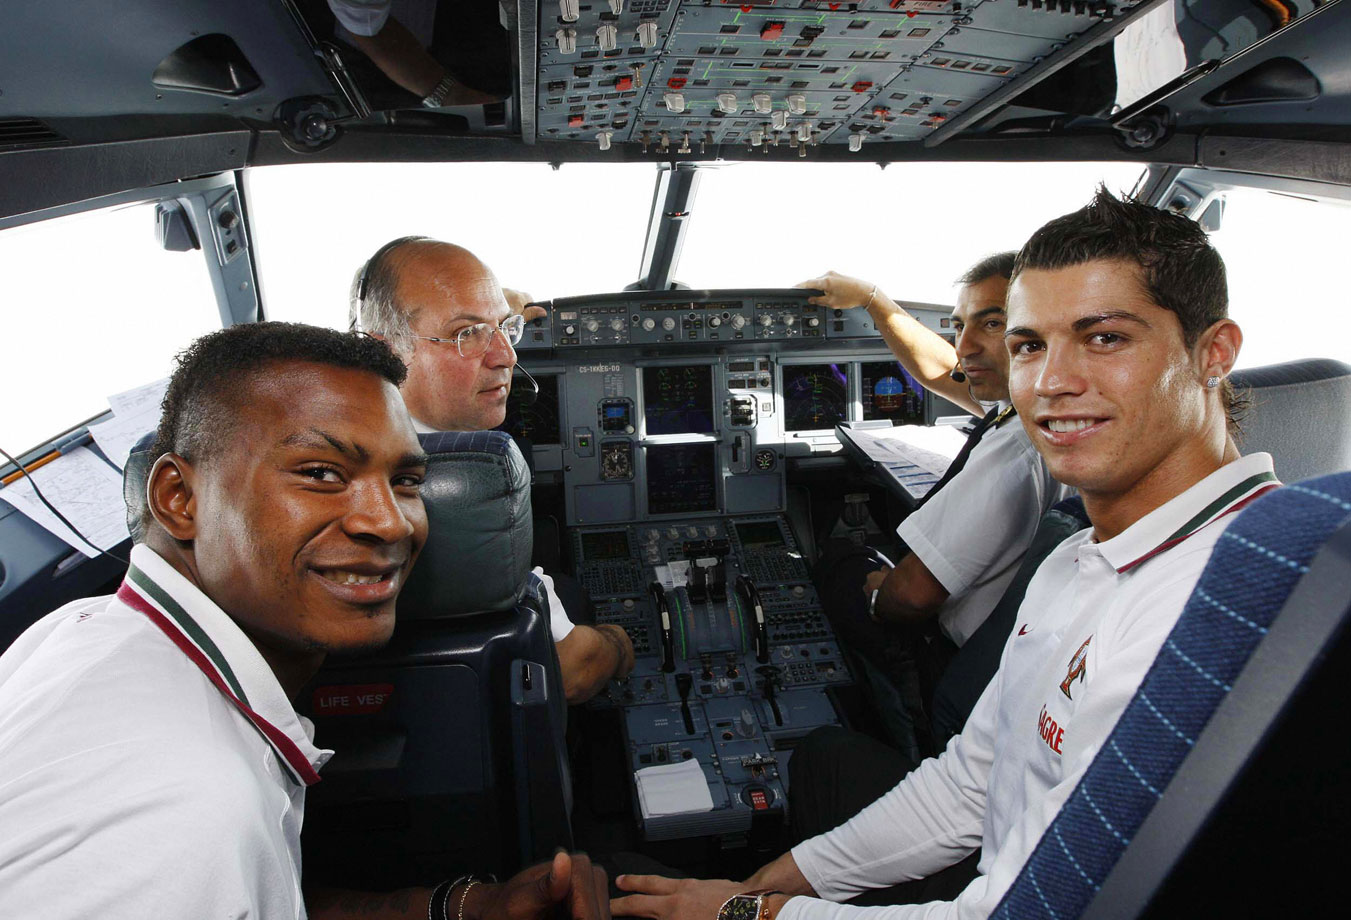 Cristiano Ronaldo and Portuguese national teammate Aziza Makukula pose in a cockpit on their way to Zurich.